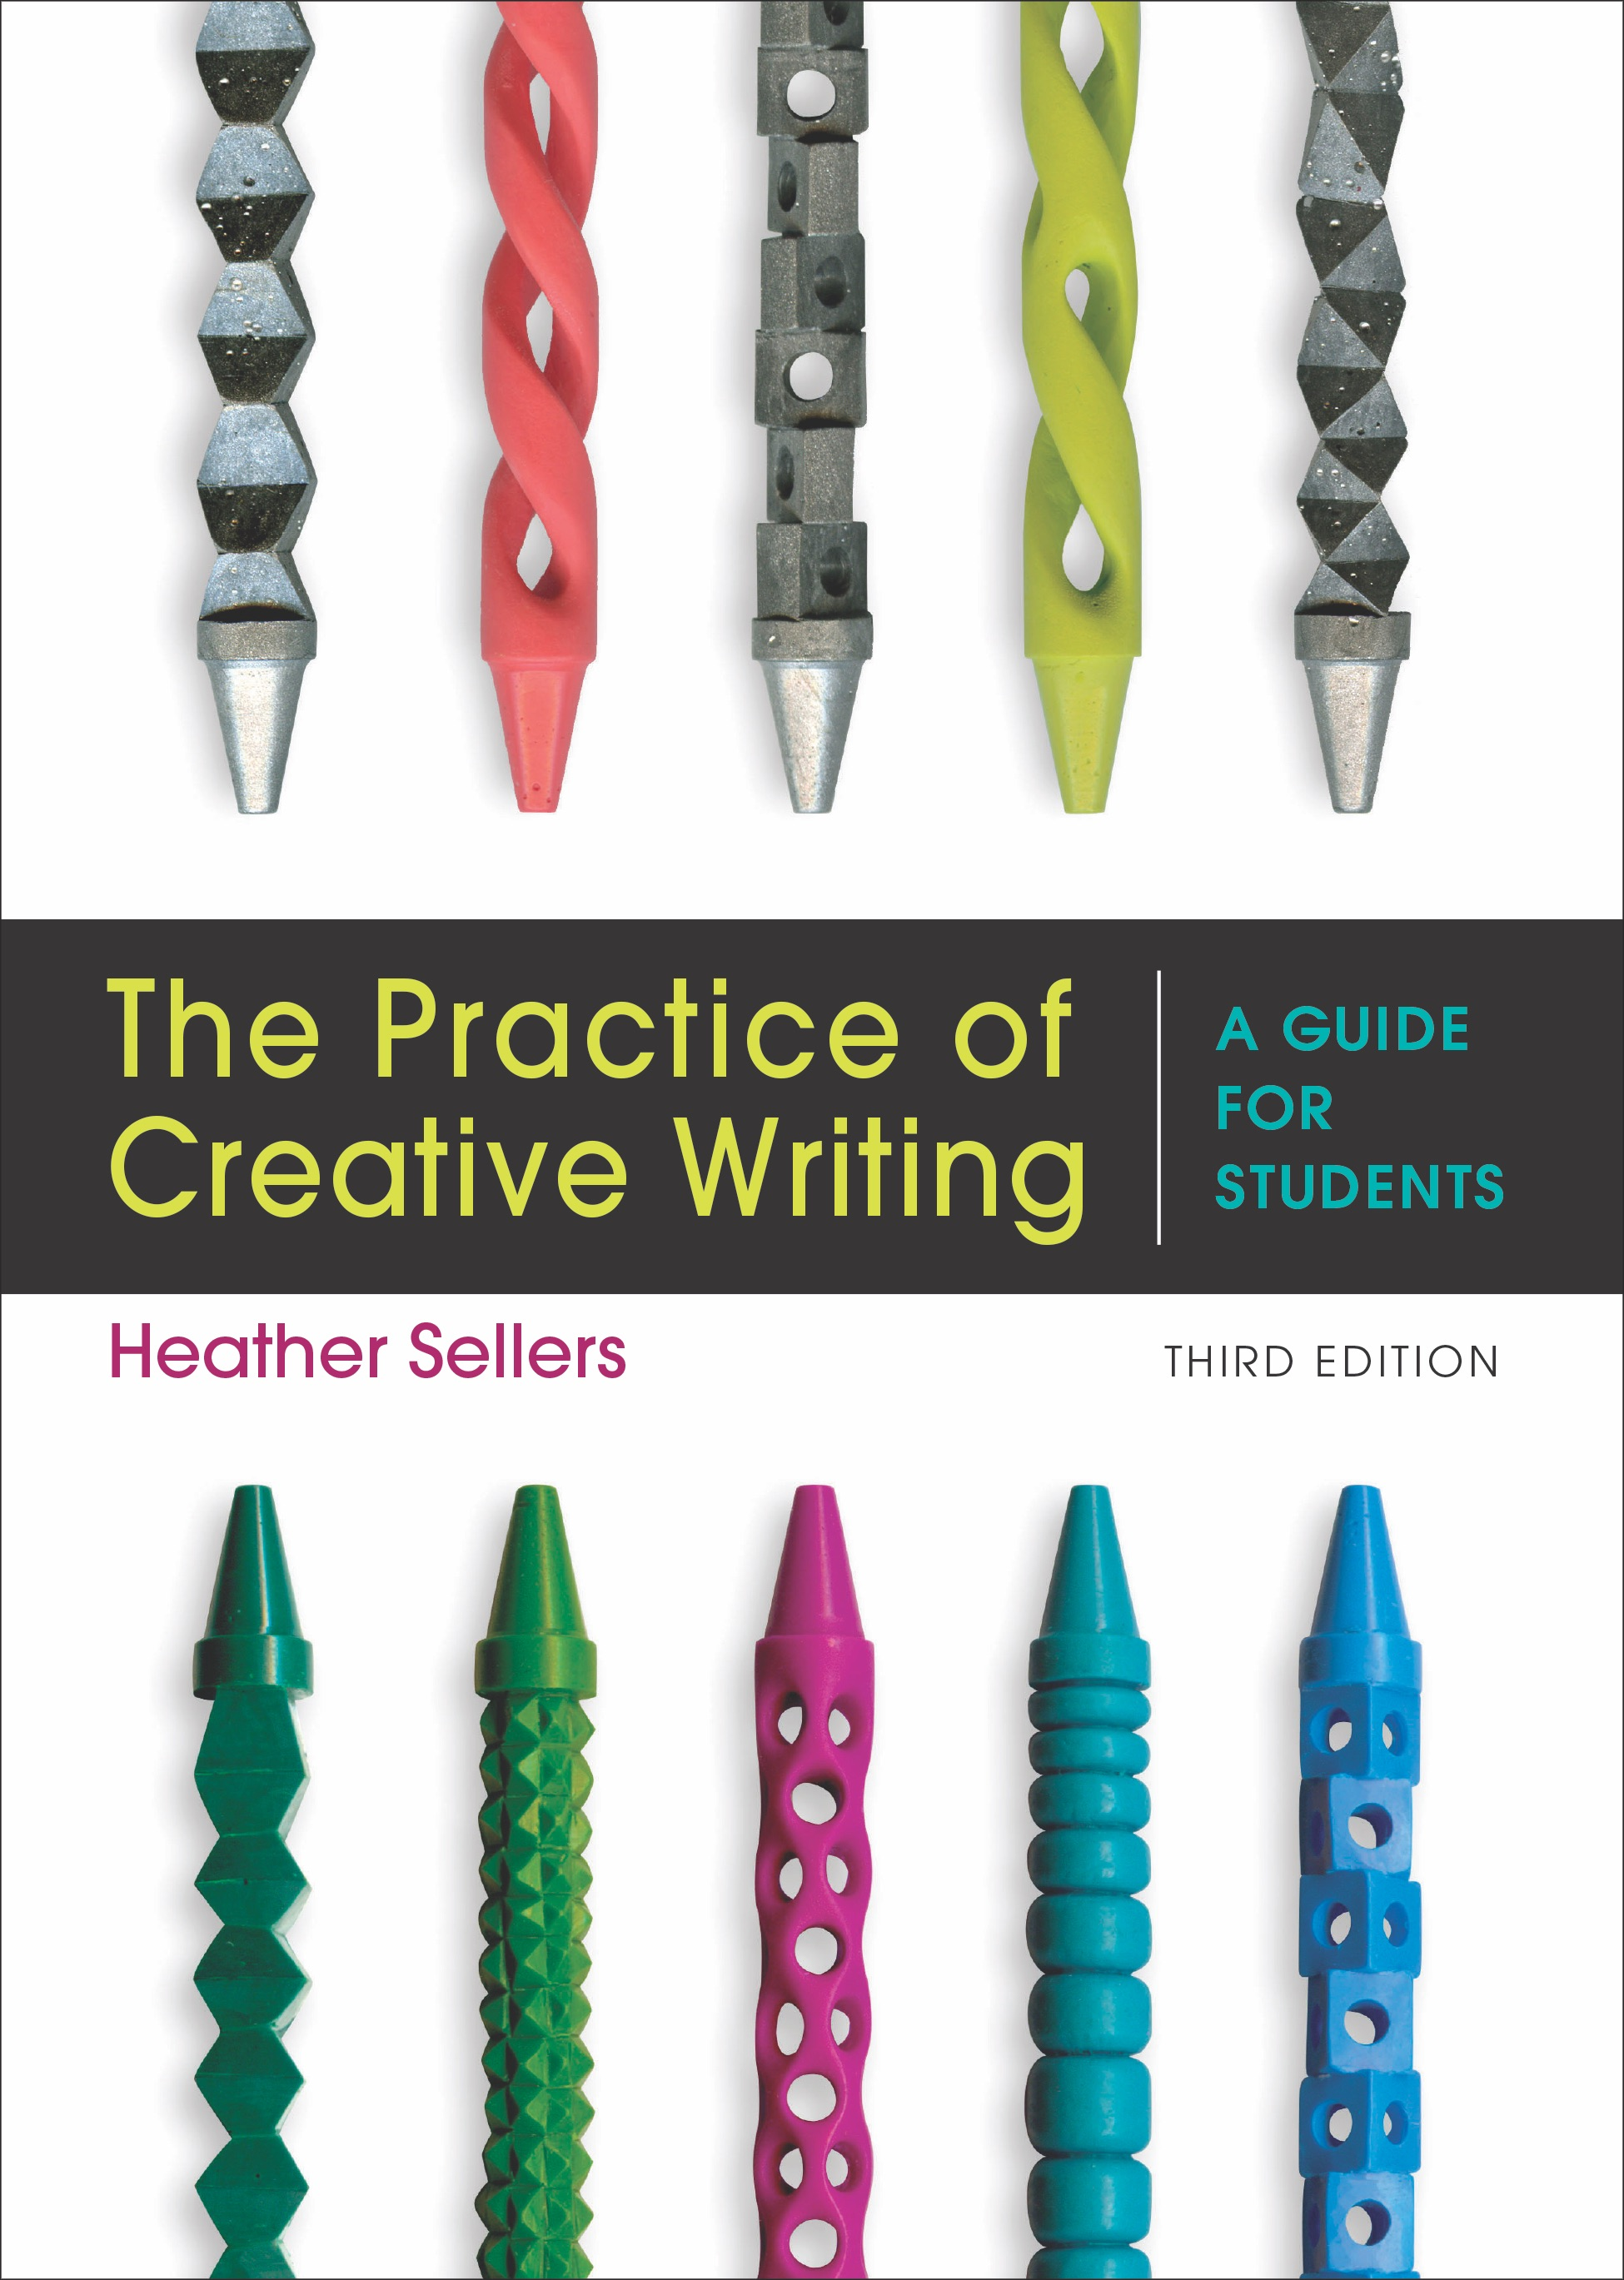 The Practice of Creative Writing, 3rd Edition